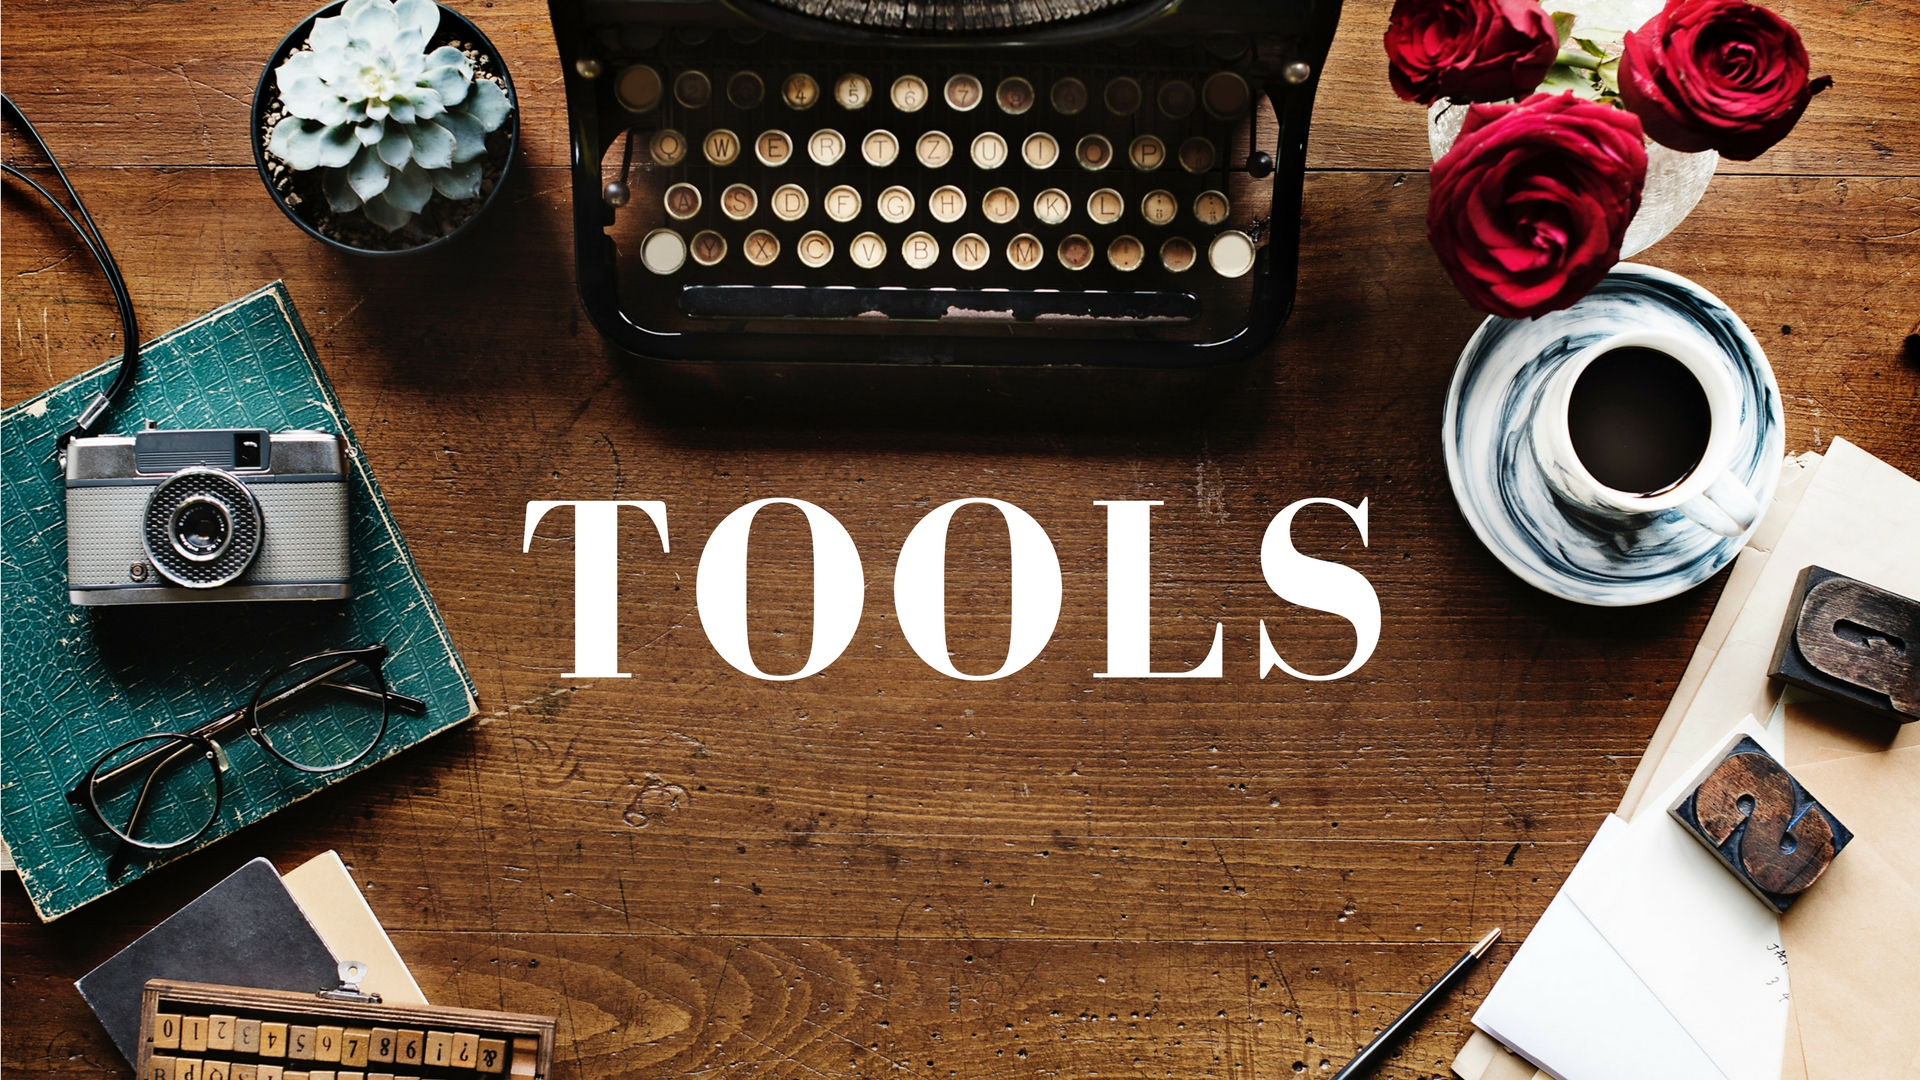 tools - We provide tools that help you create a story, ensure it is the right story and empower you tell an influencial story.